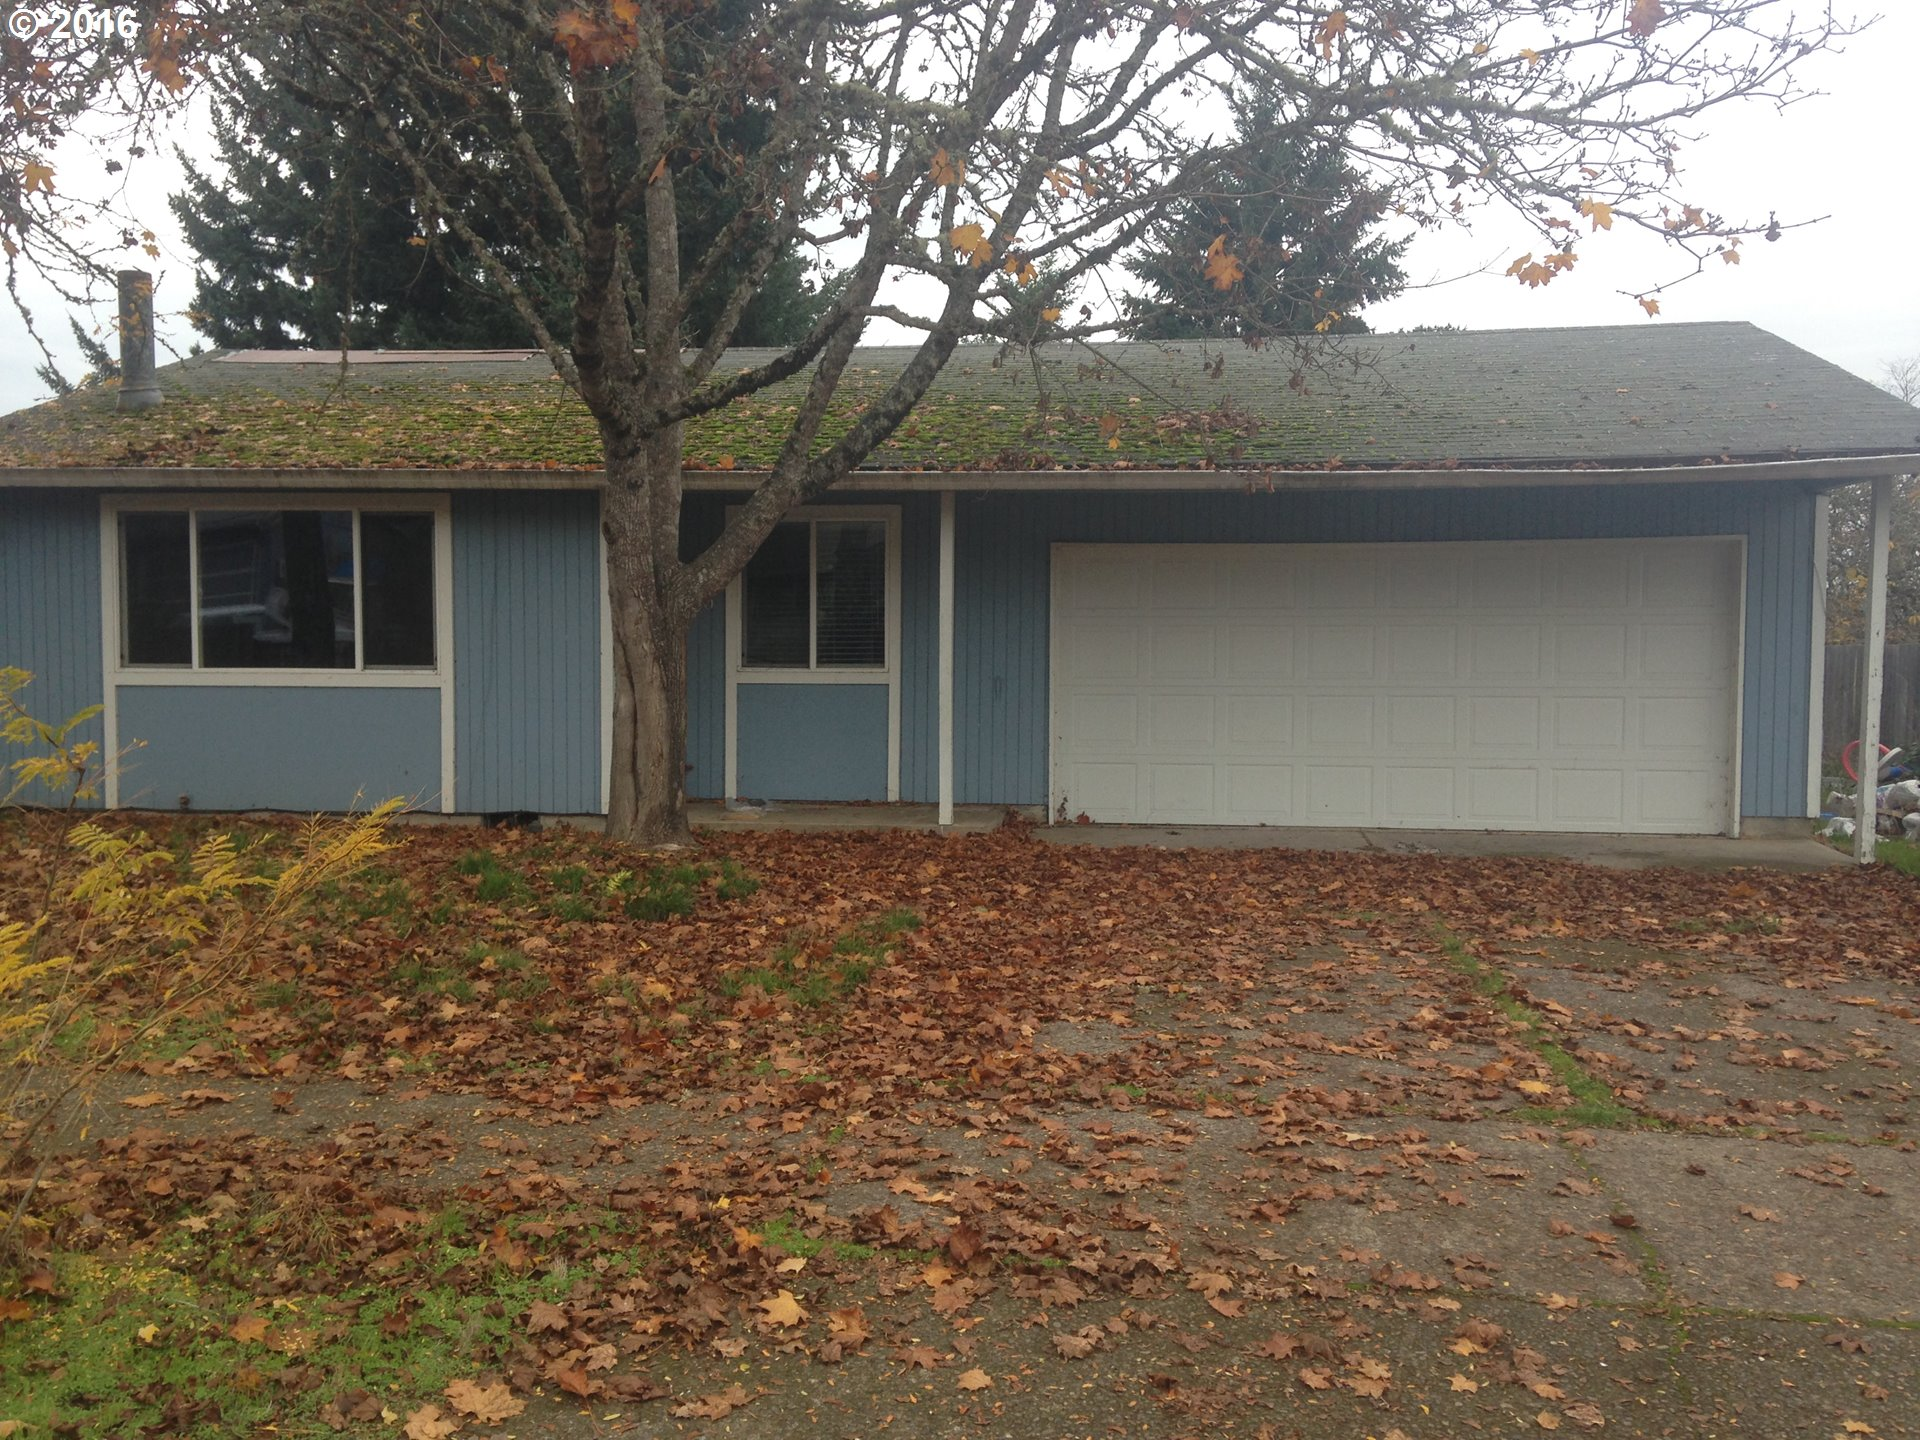 560 EVELYN AVE, Creswell, OR 97426